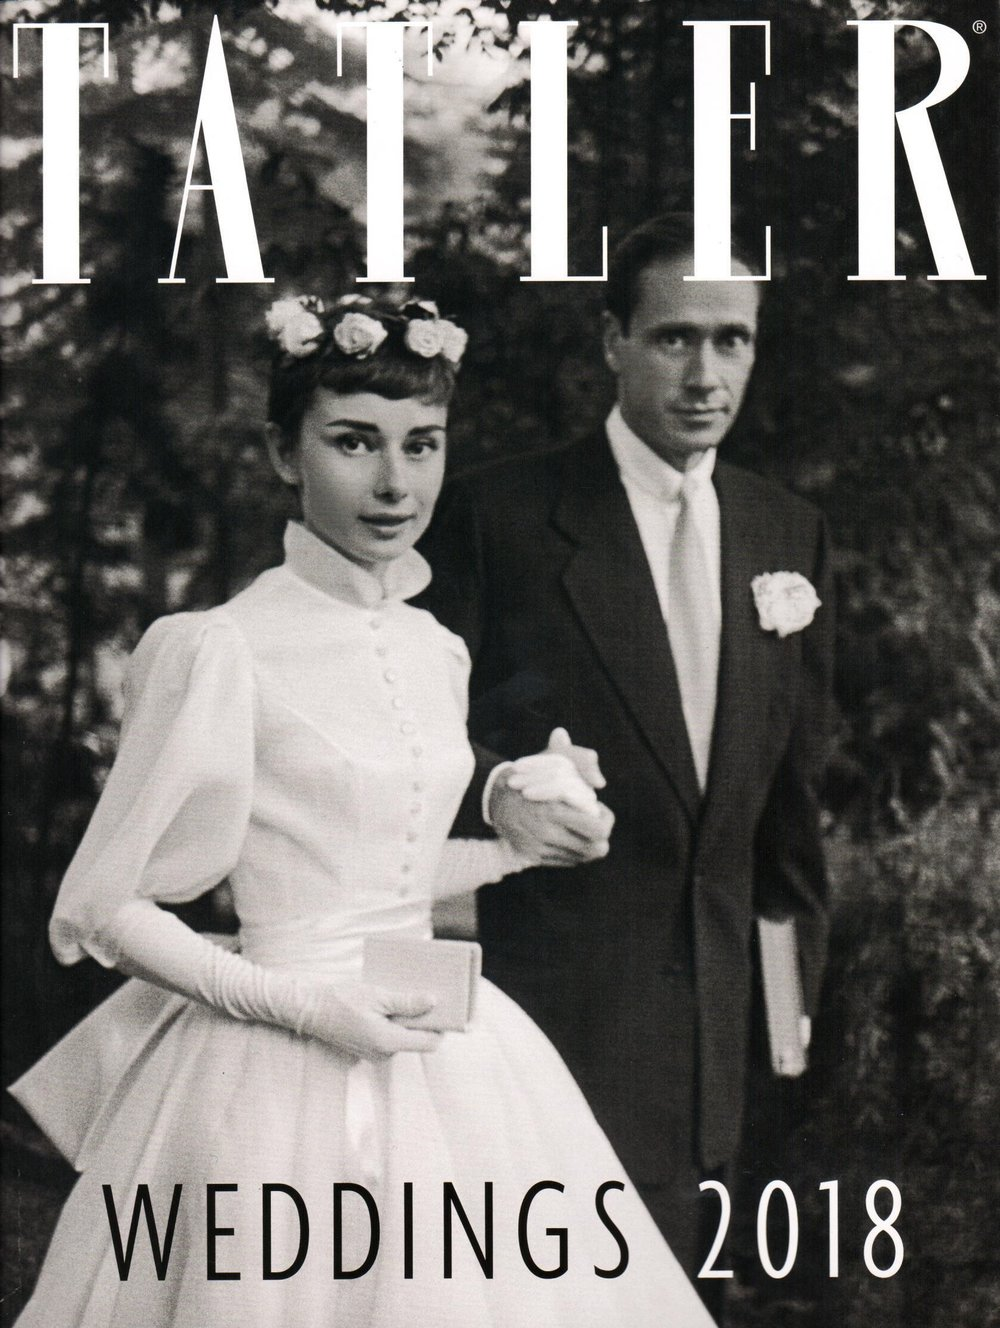 Tatler Weddings 2018 cover.jpg